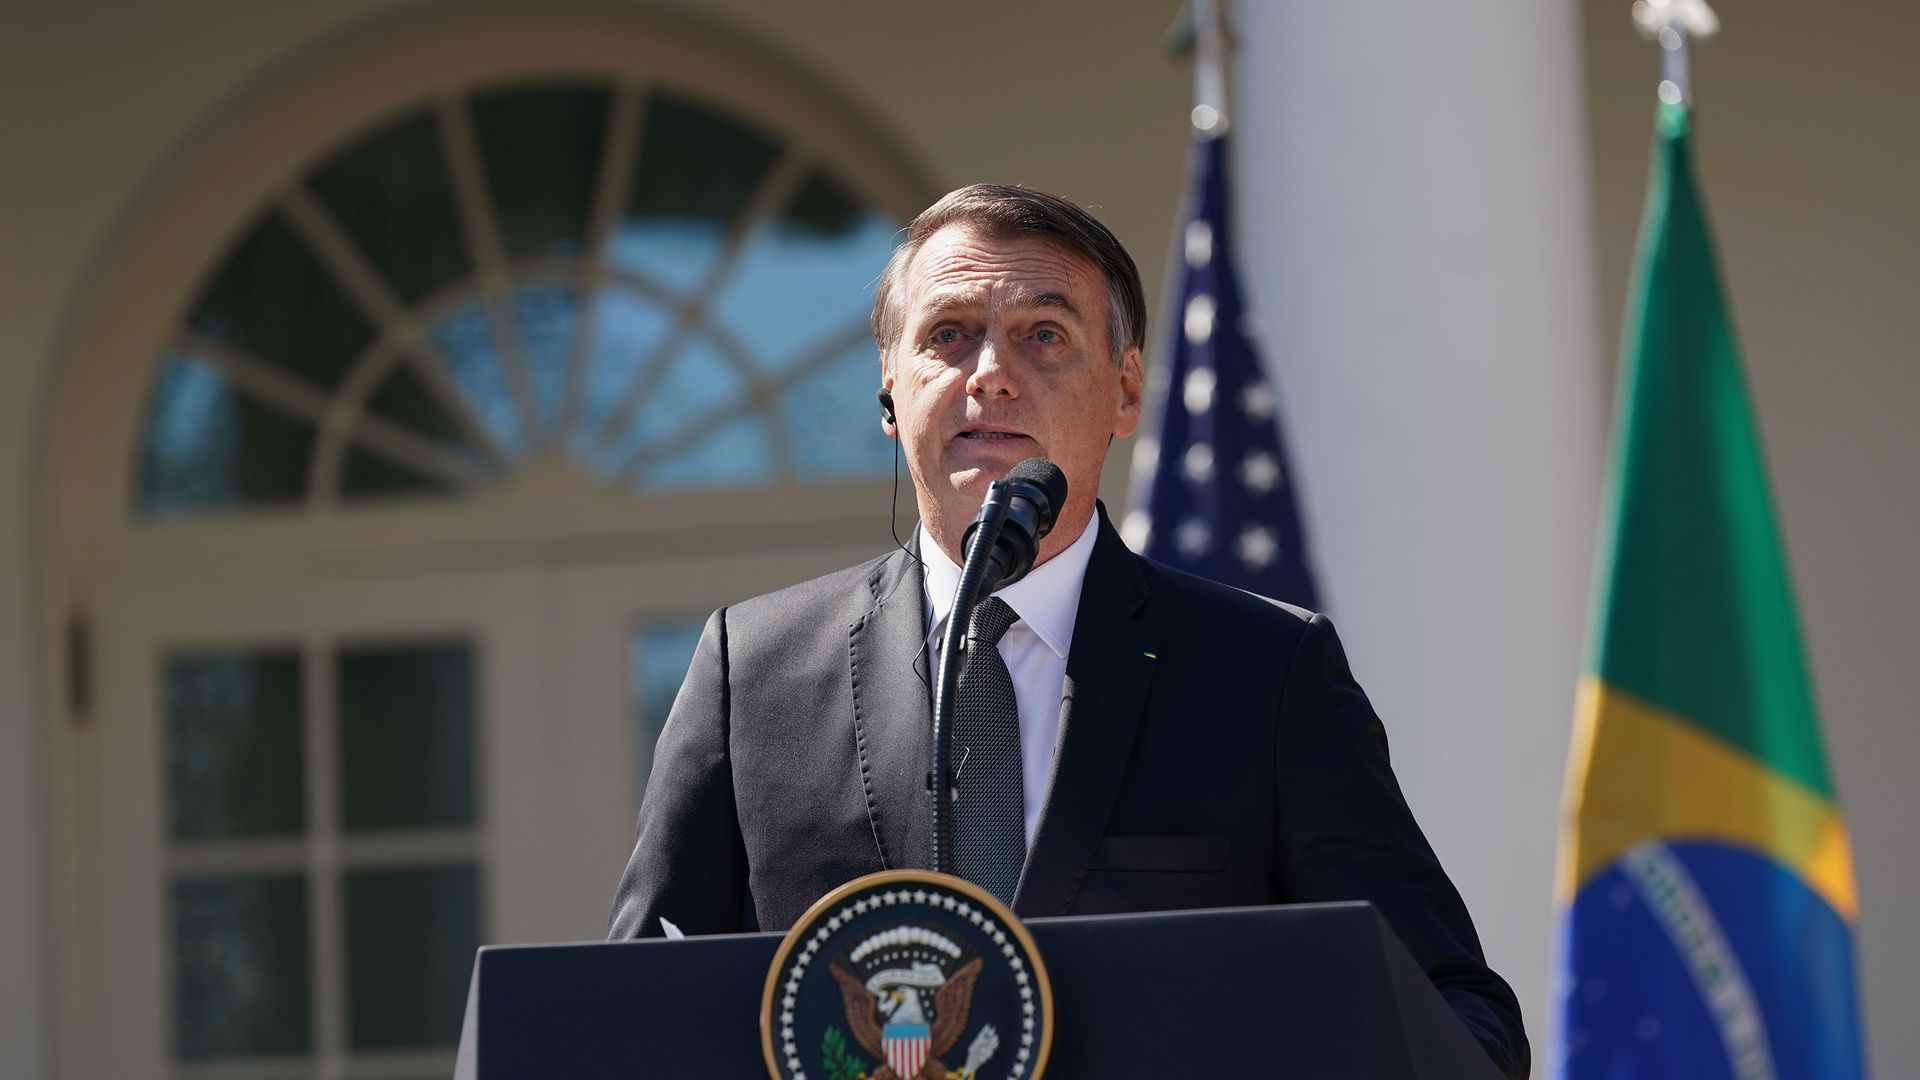 Brazilian President Jair Bolsonaro is pictured here speaking at a podium at the White House, with an American and Brazilian flag behind him.